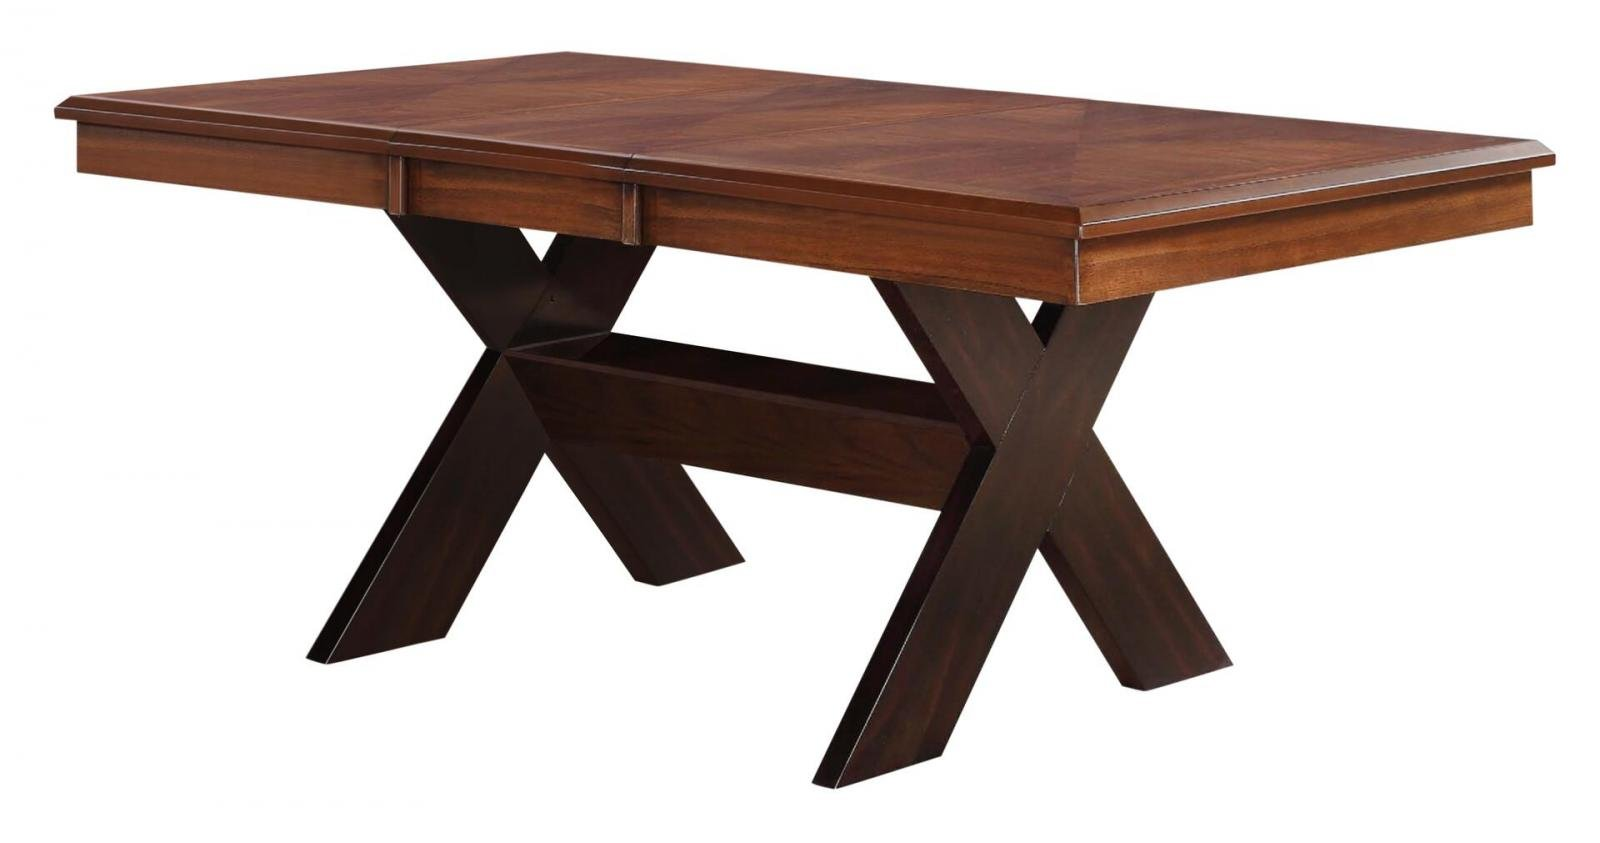 Transitional Cherry  Dining Table 1 pcs Cosmos Furniture 2022PIRSA